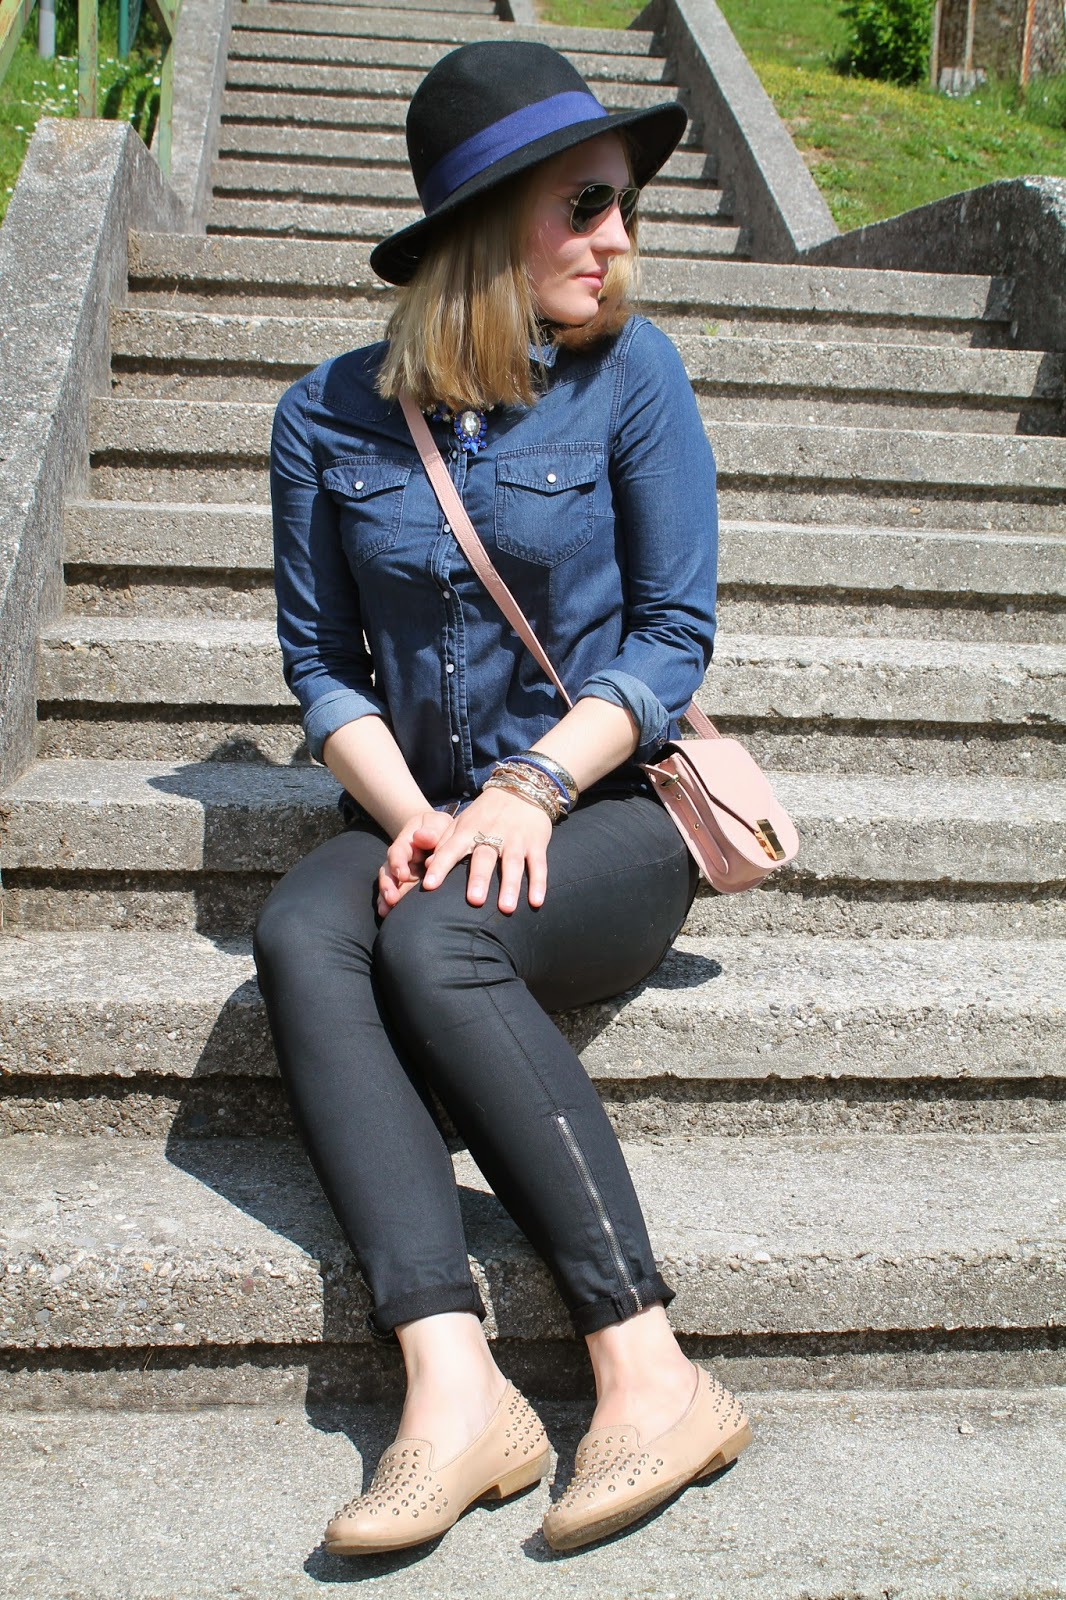 Fashionblogger Austria / Österreich / Deutsch / German / Kärnten / Carinthia / Klagenfurt / Köttmannsdorf / Spring Look / Classy / Edgy / Oasap / Forever 21 / C&A / H&M / Deichmann / Forever 21 / Waxed Skinny / Cross Body Bag / Nude Look / Statement Necklace /